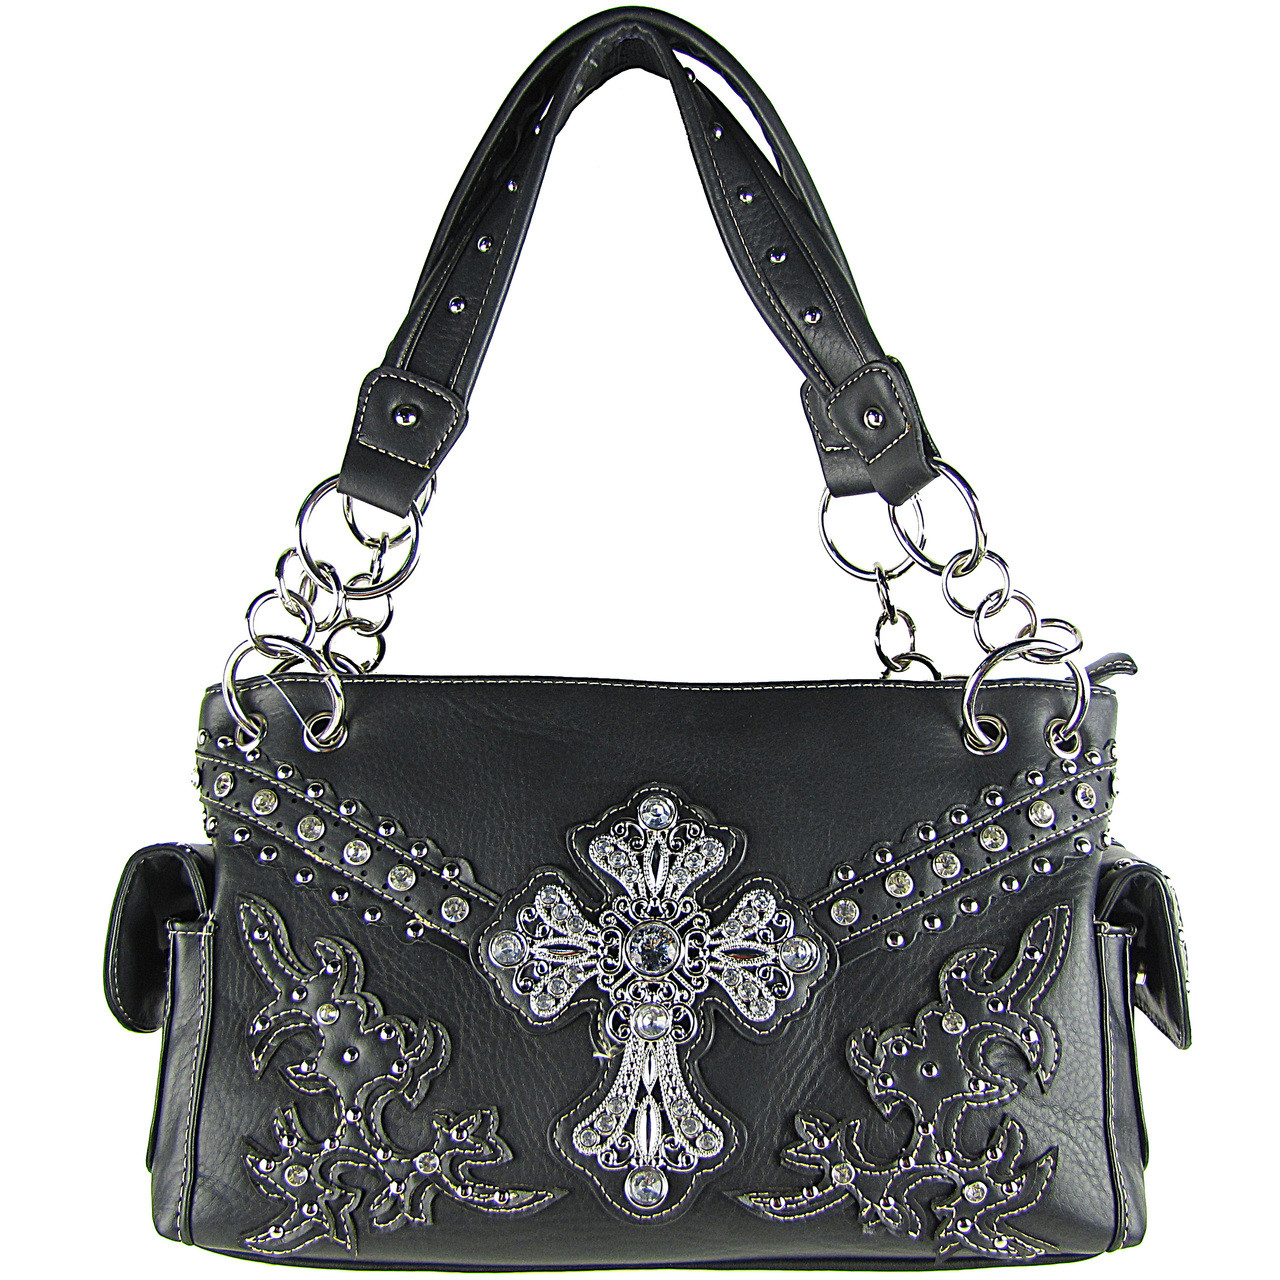 BLACK STUDDED RHINESTONE CROSS LOOK SHOULDER HANDBAG HB1-72LCRBLK